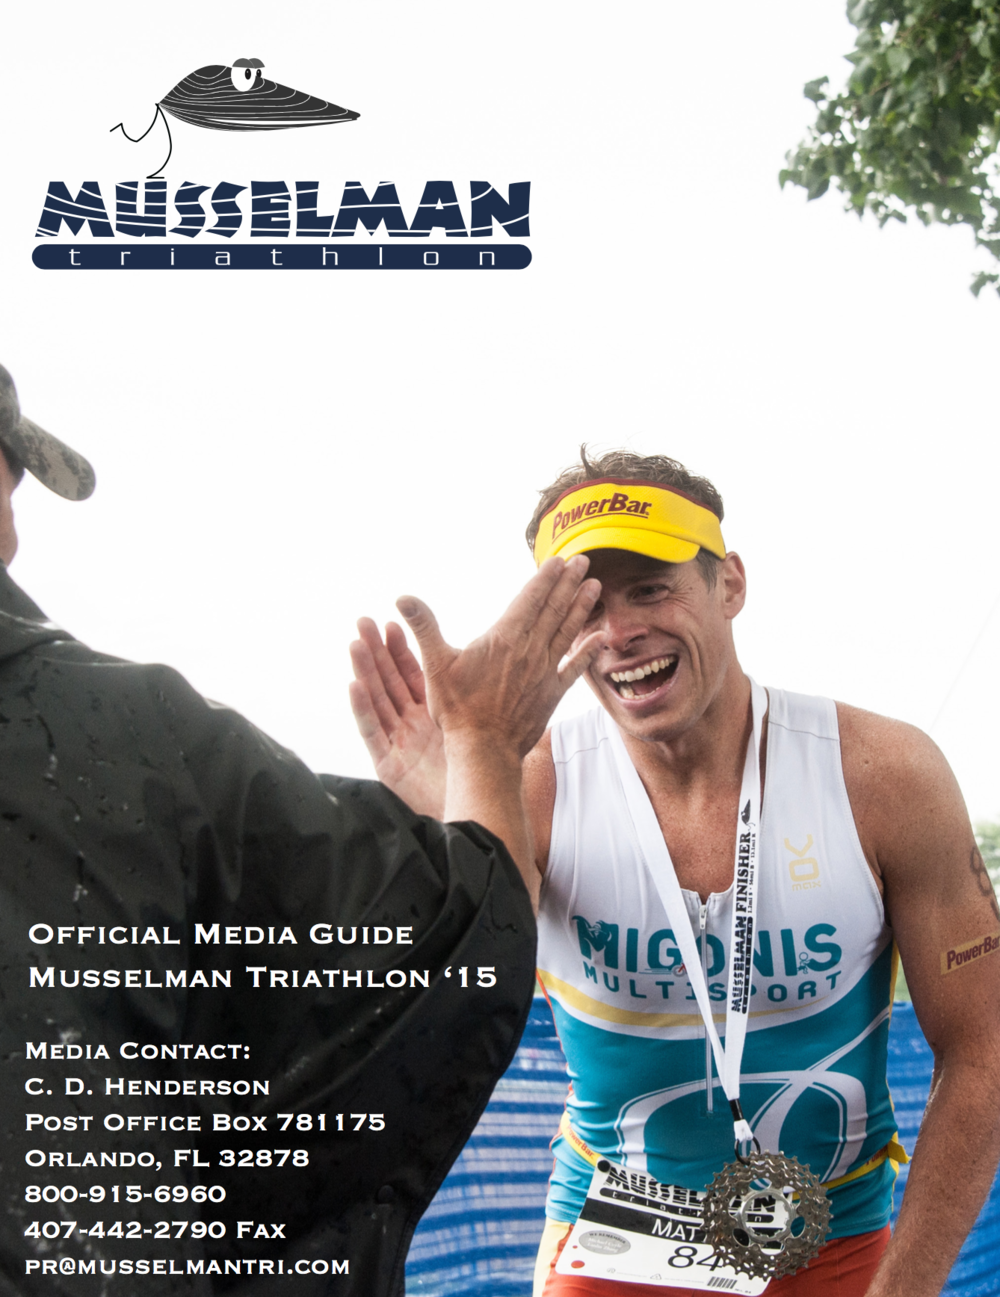 Media Guide: Musselman Triathlon, 2015 [PDF]